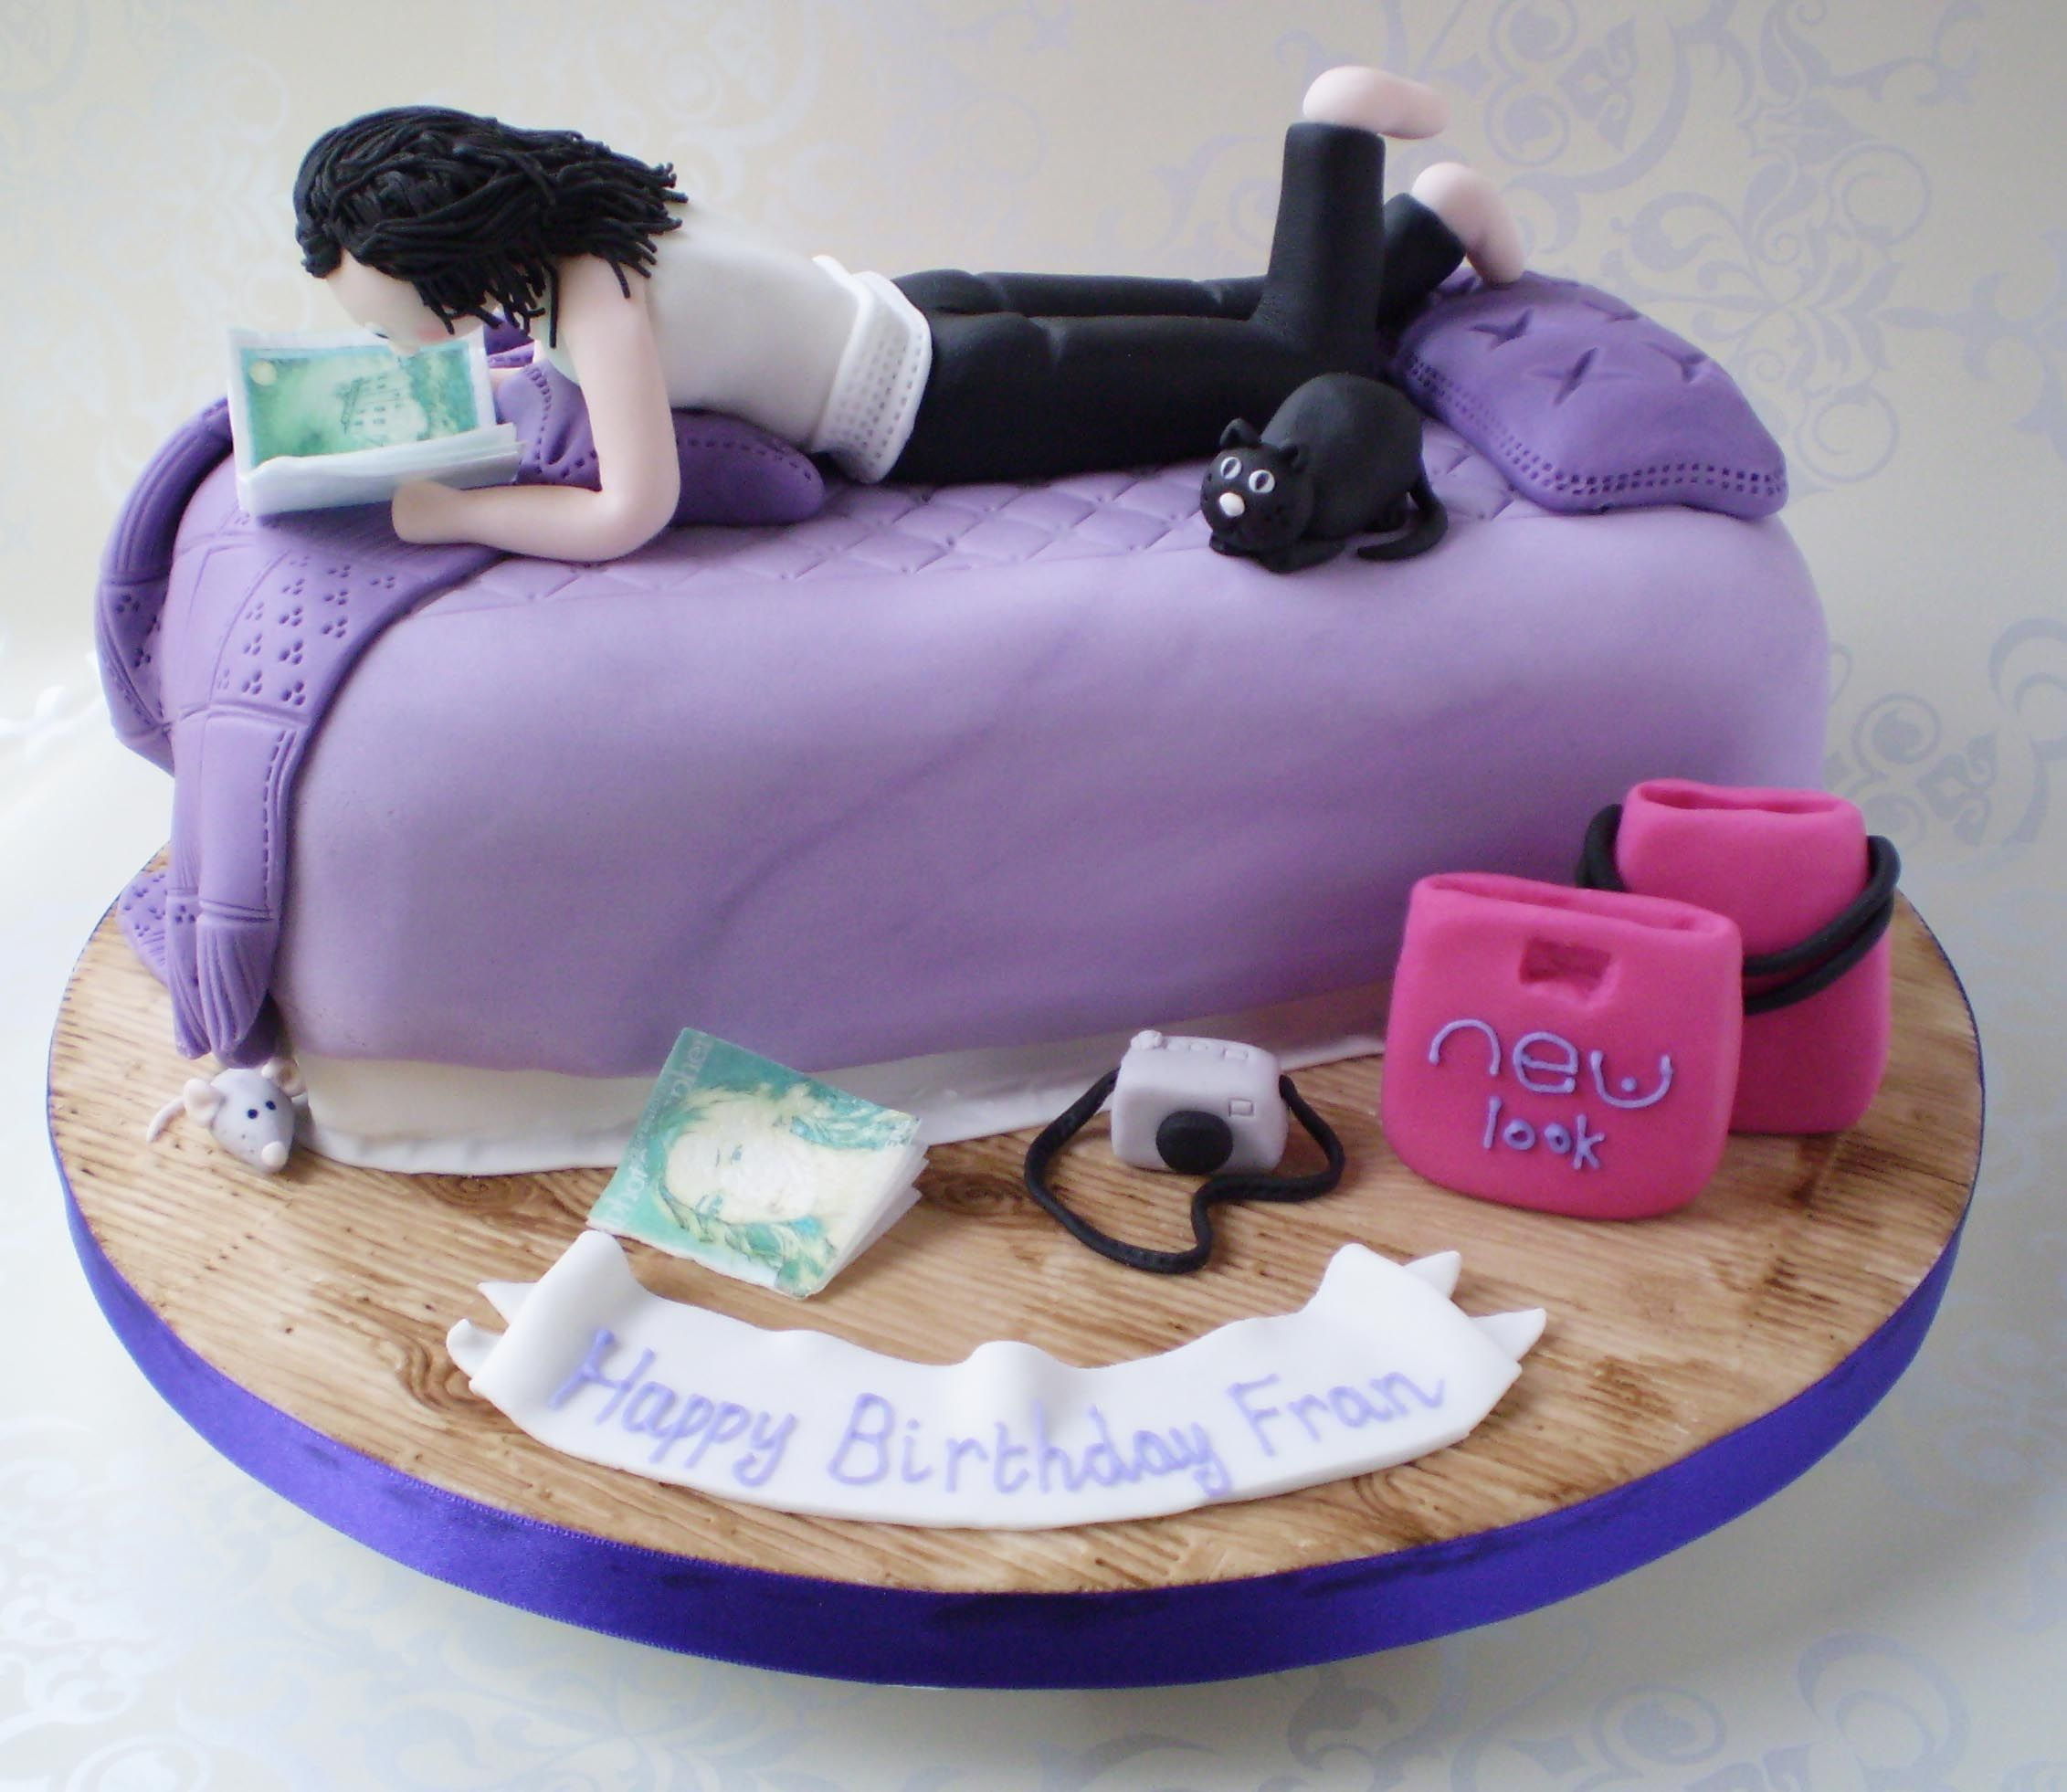 Teenagers Bedroom Birthday Cake cakepins.com | Frejas ...